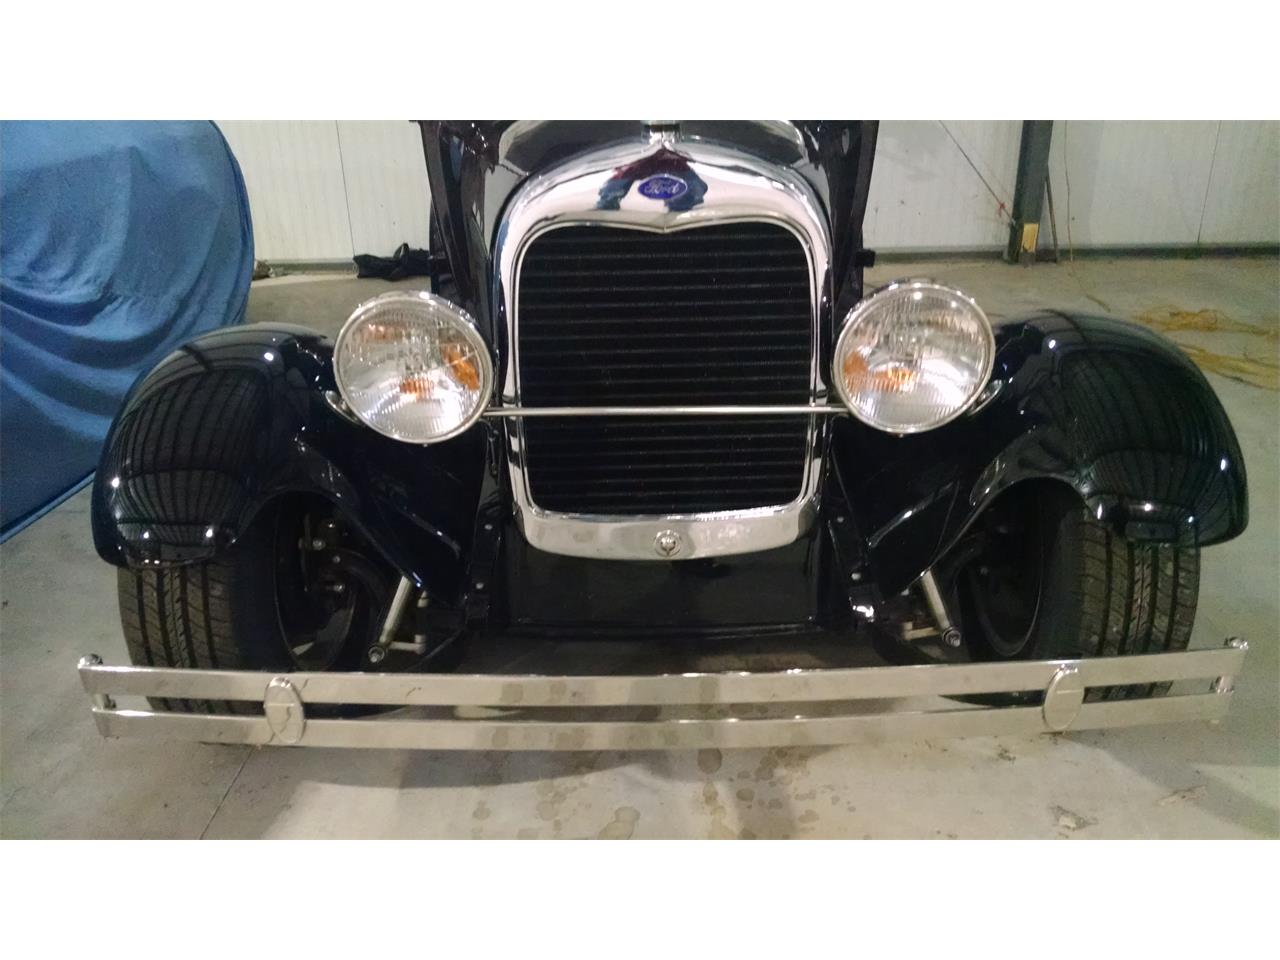 Large Picture of Classic '29 Ford Sedan Delivery located in Ohio - $79,500.00 Offered by a Private Seller - ENZP